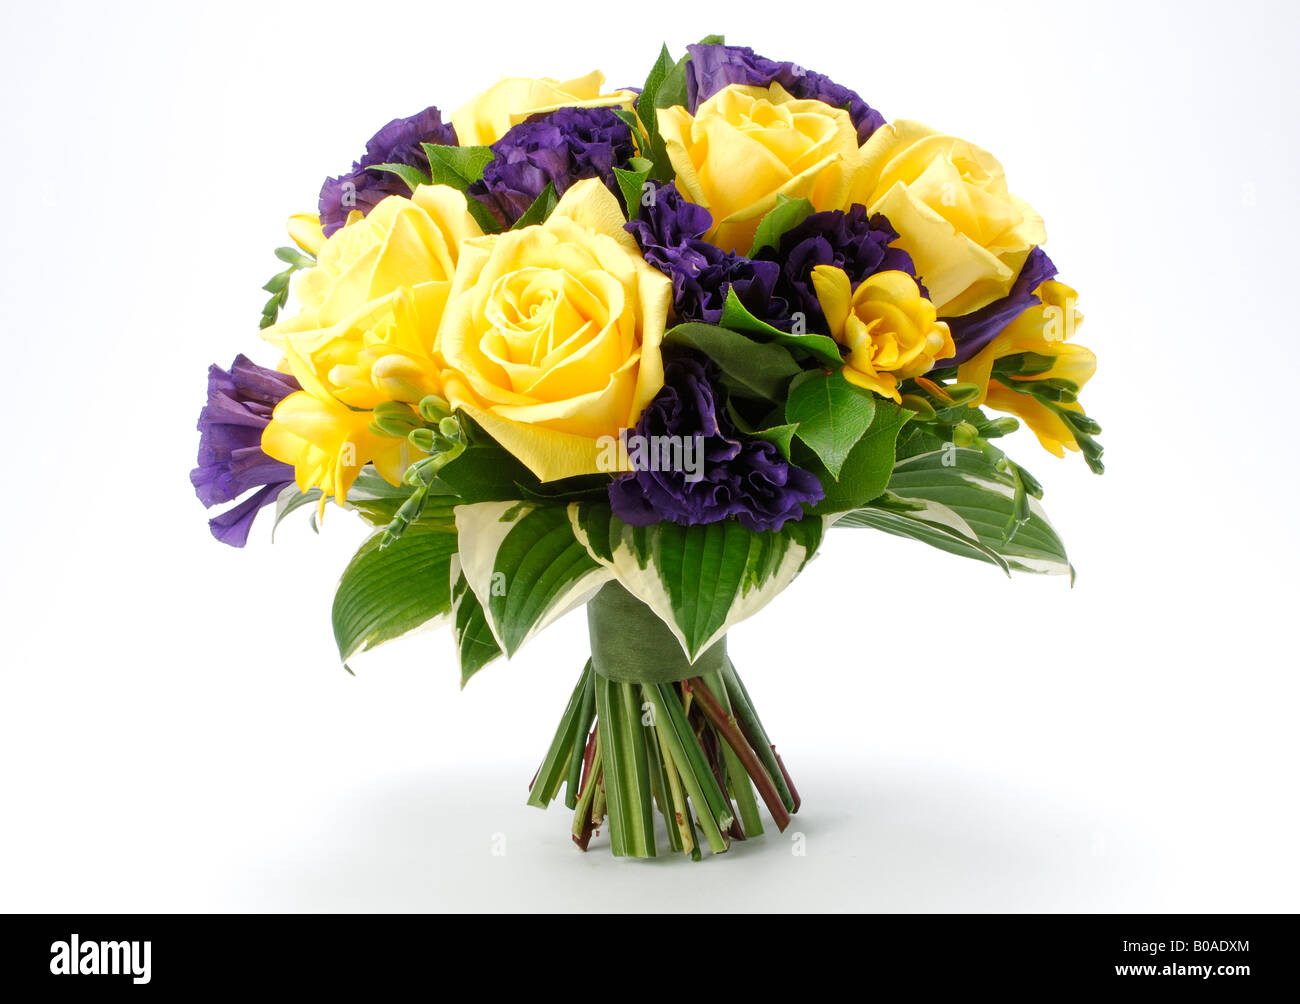 flowers bouquet roses yellow